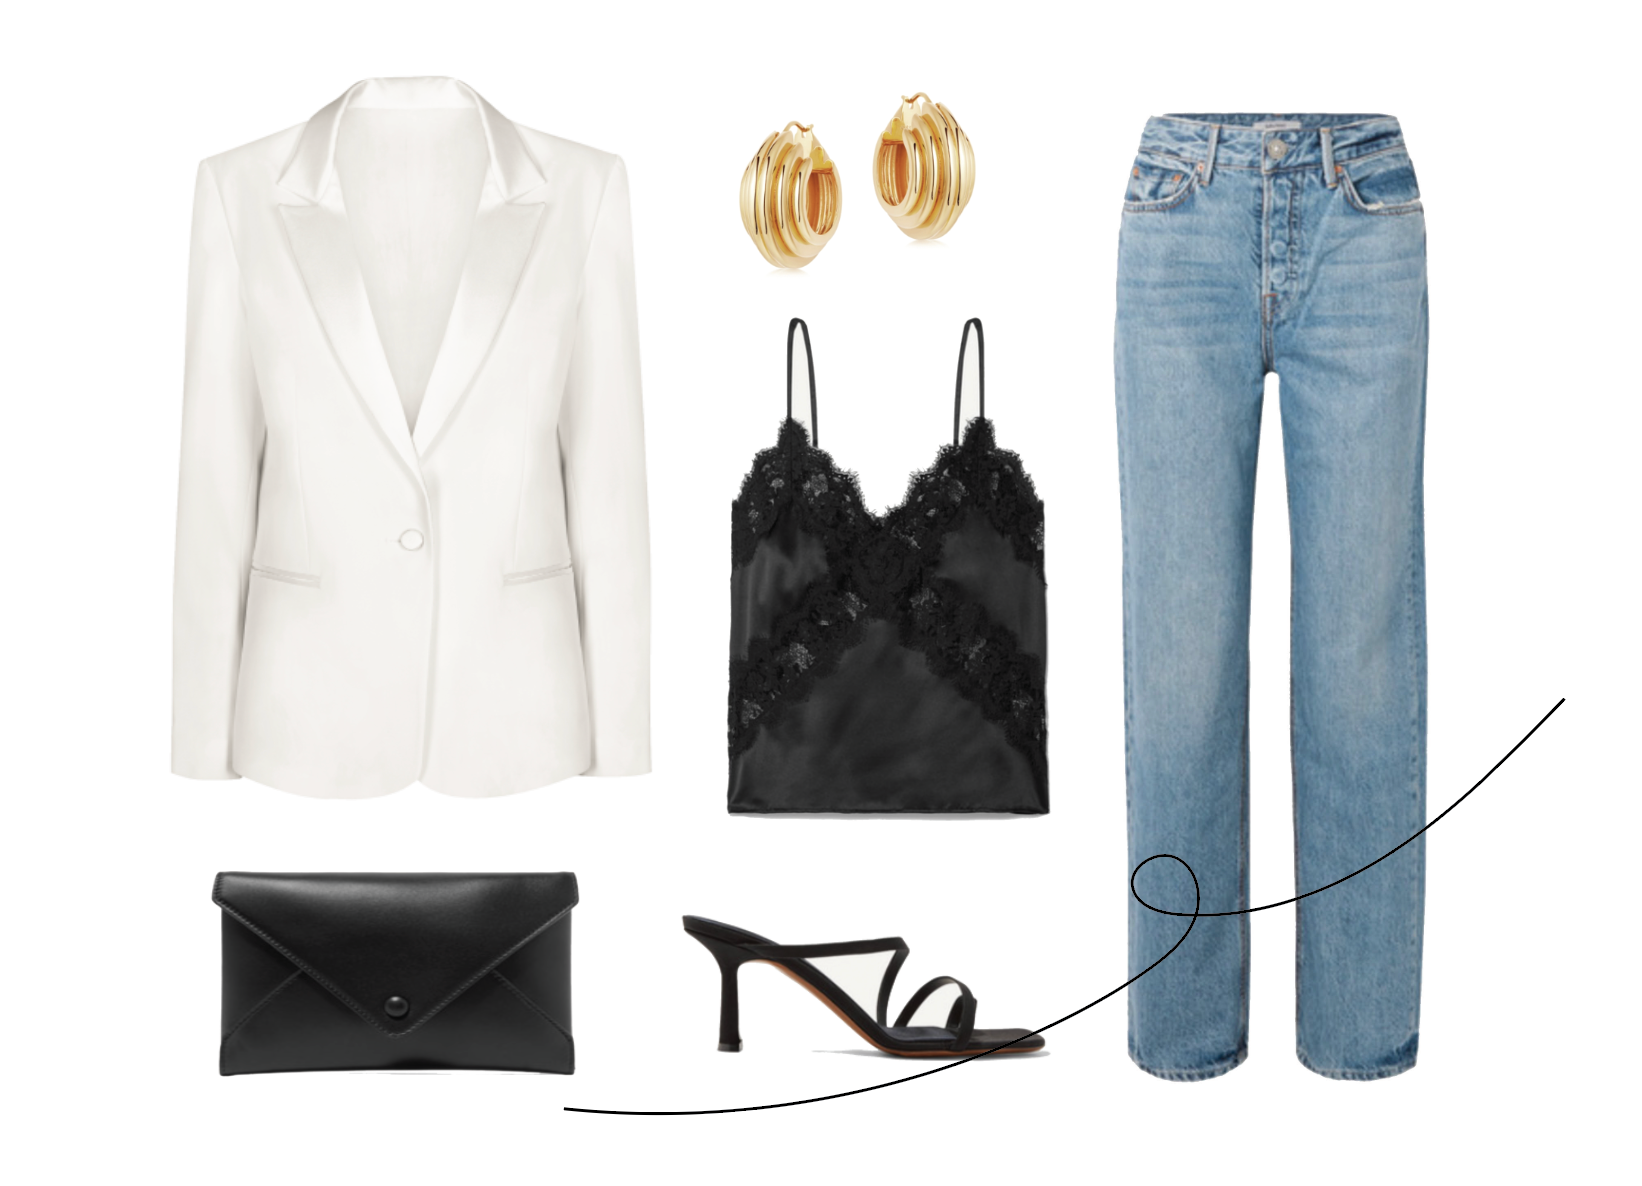 styling a white jacket; casual suit style